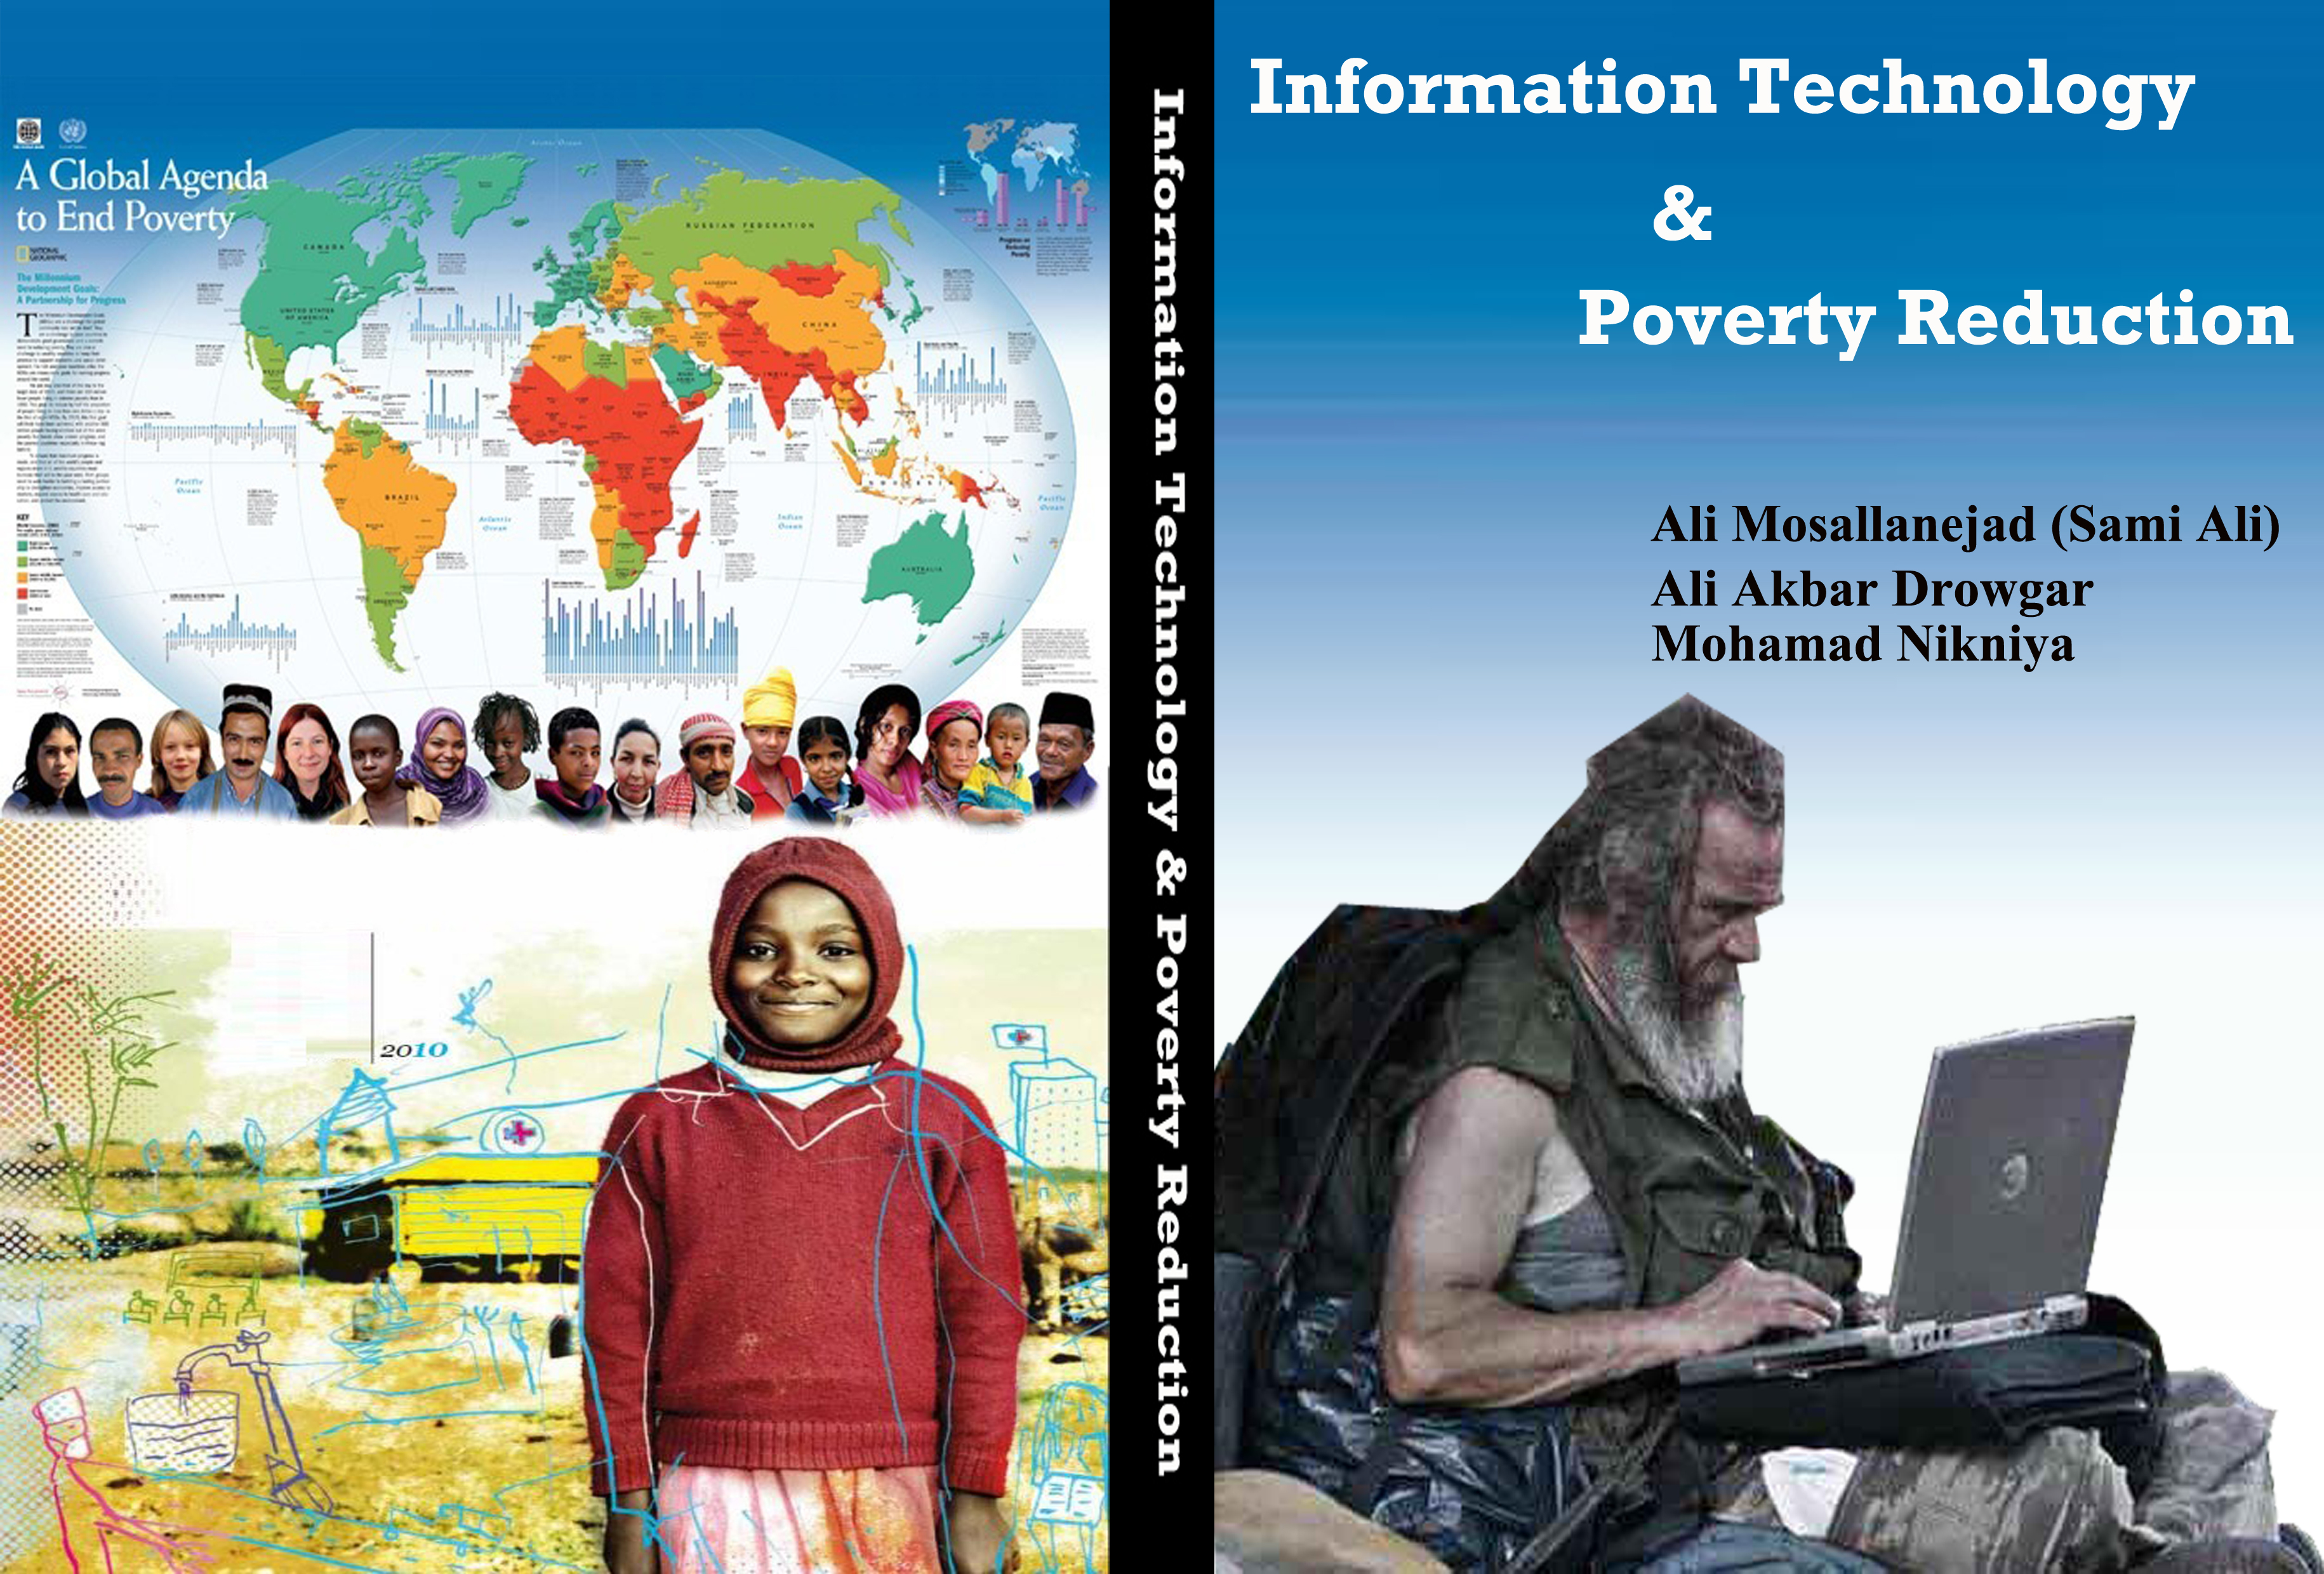 Information Technology & Poverty Reduction.jpg